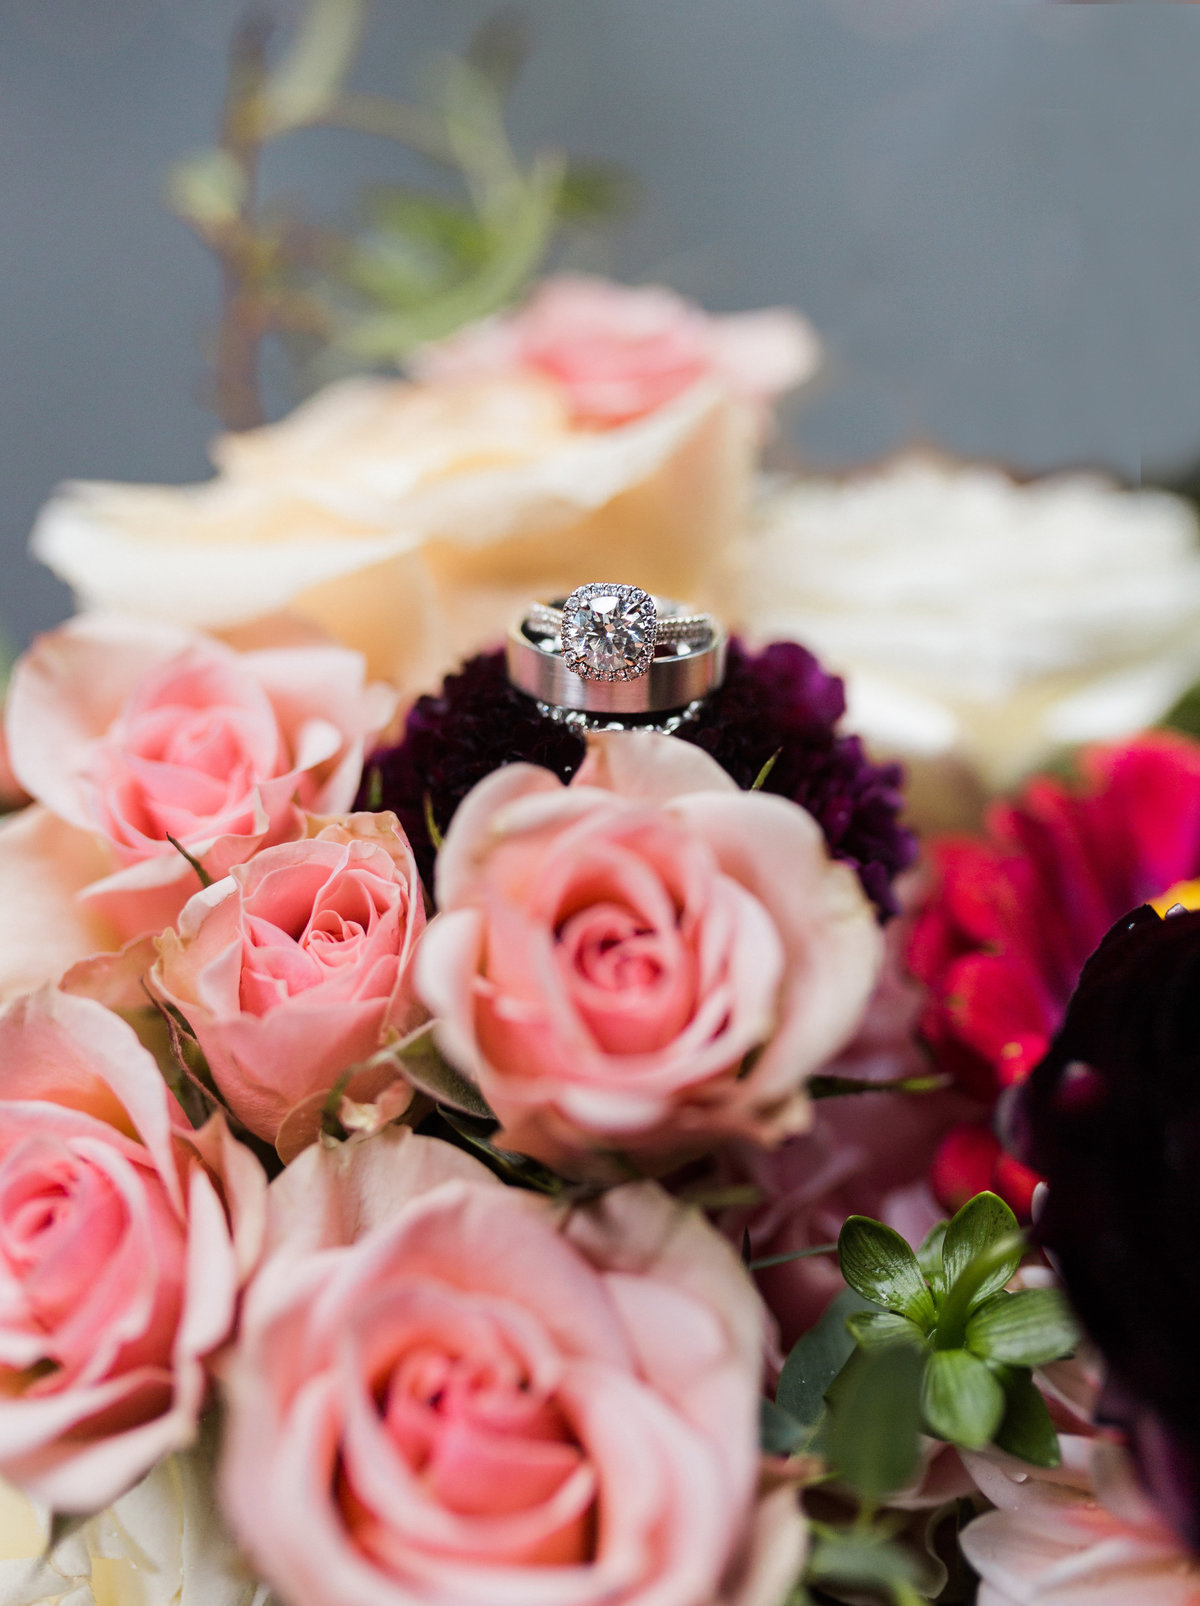 Wedding rings on floral bouquet